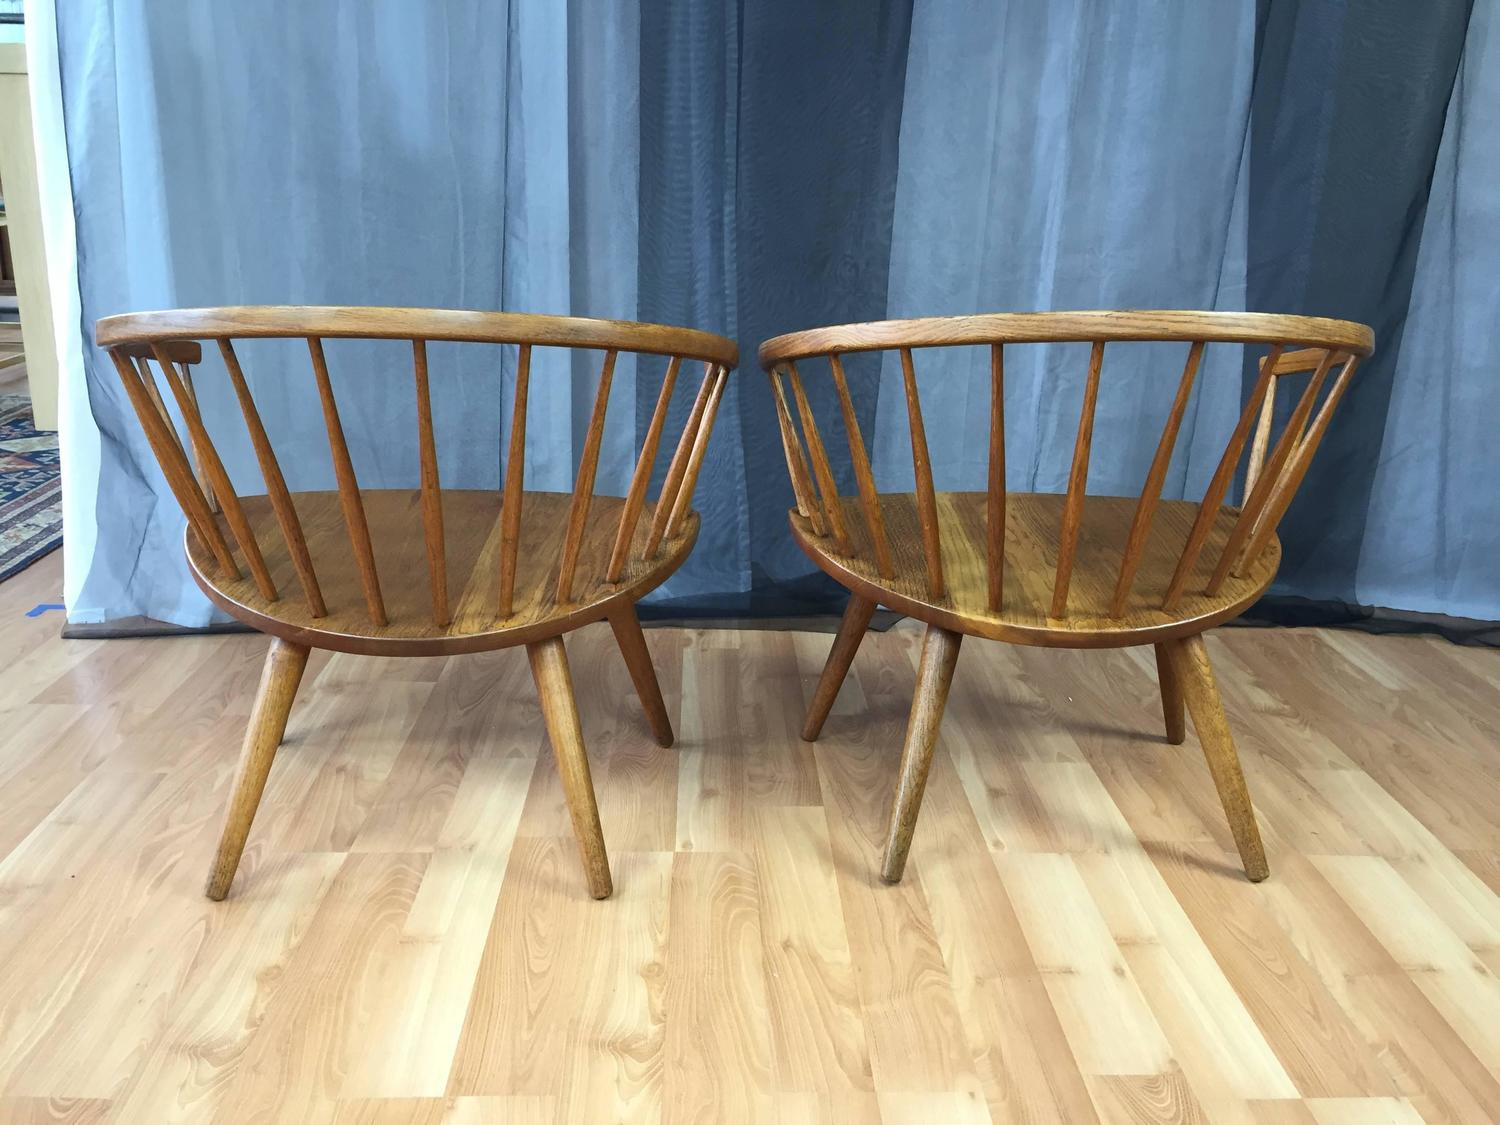 Pair of Yngve Ekström Oak u201cArka u201d Chairs for Stolab SATURDAY SALE For Sale at 1stdibs